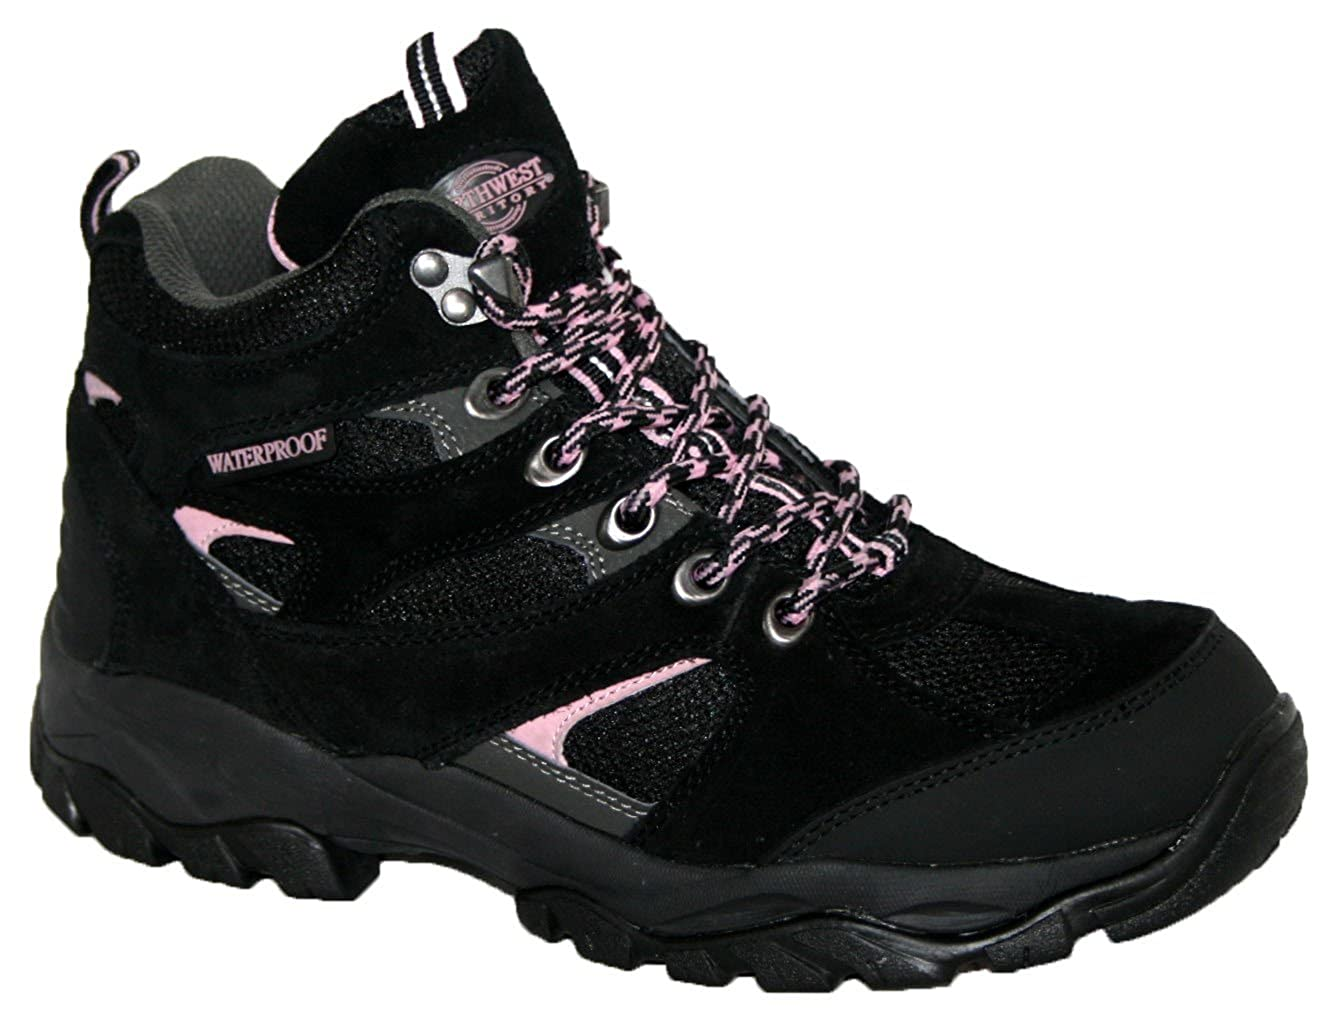 LADIES CHARLOTTE FULLY WATERPROOF WALKING HIKING LACE UP TRAINER BOOT   Amazon.co.uk  Shoes   Bags 4f6370119161